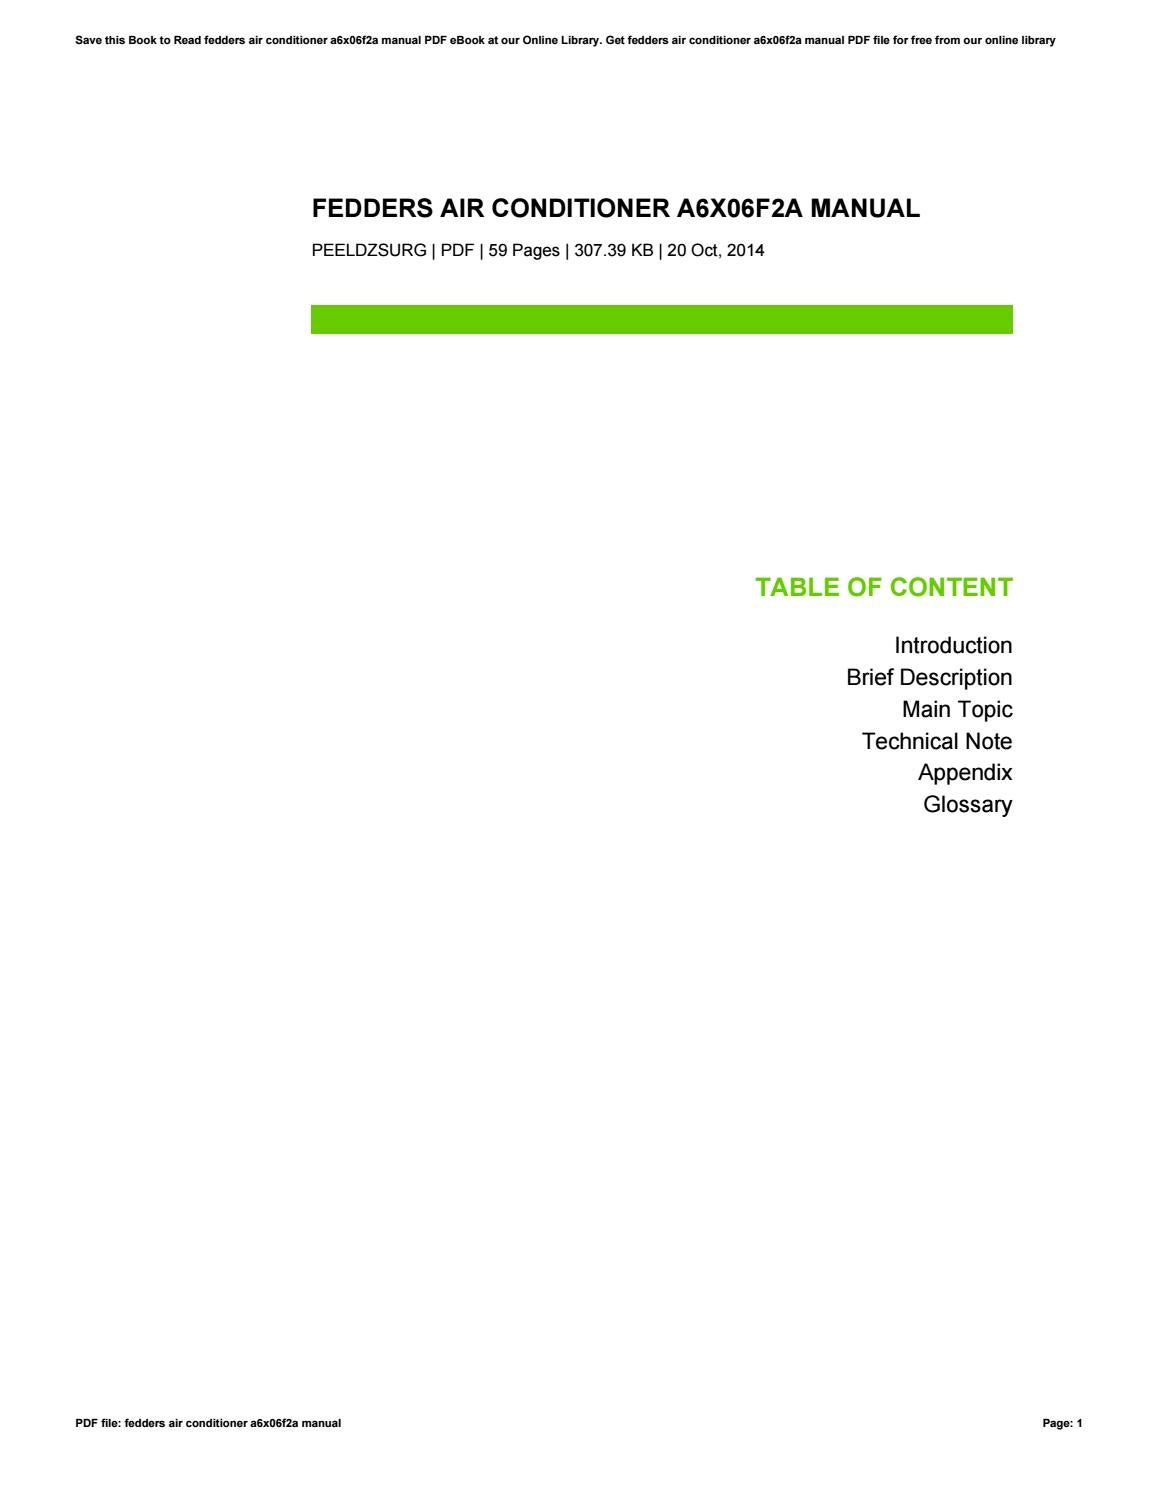 Fedders Air Conditioner A6x06f2a Manual By Raymondbanda4423 Issuu Handler Wiring Diagram